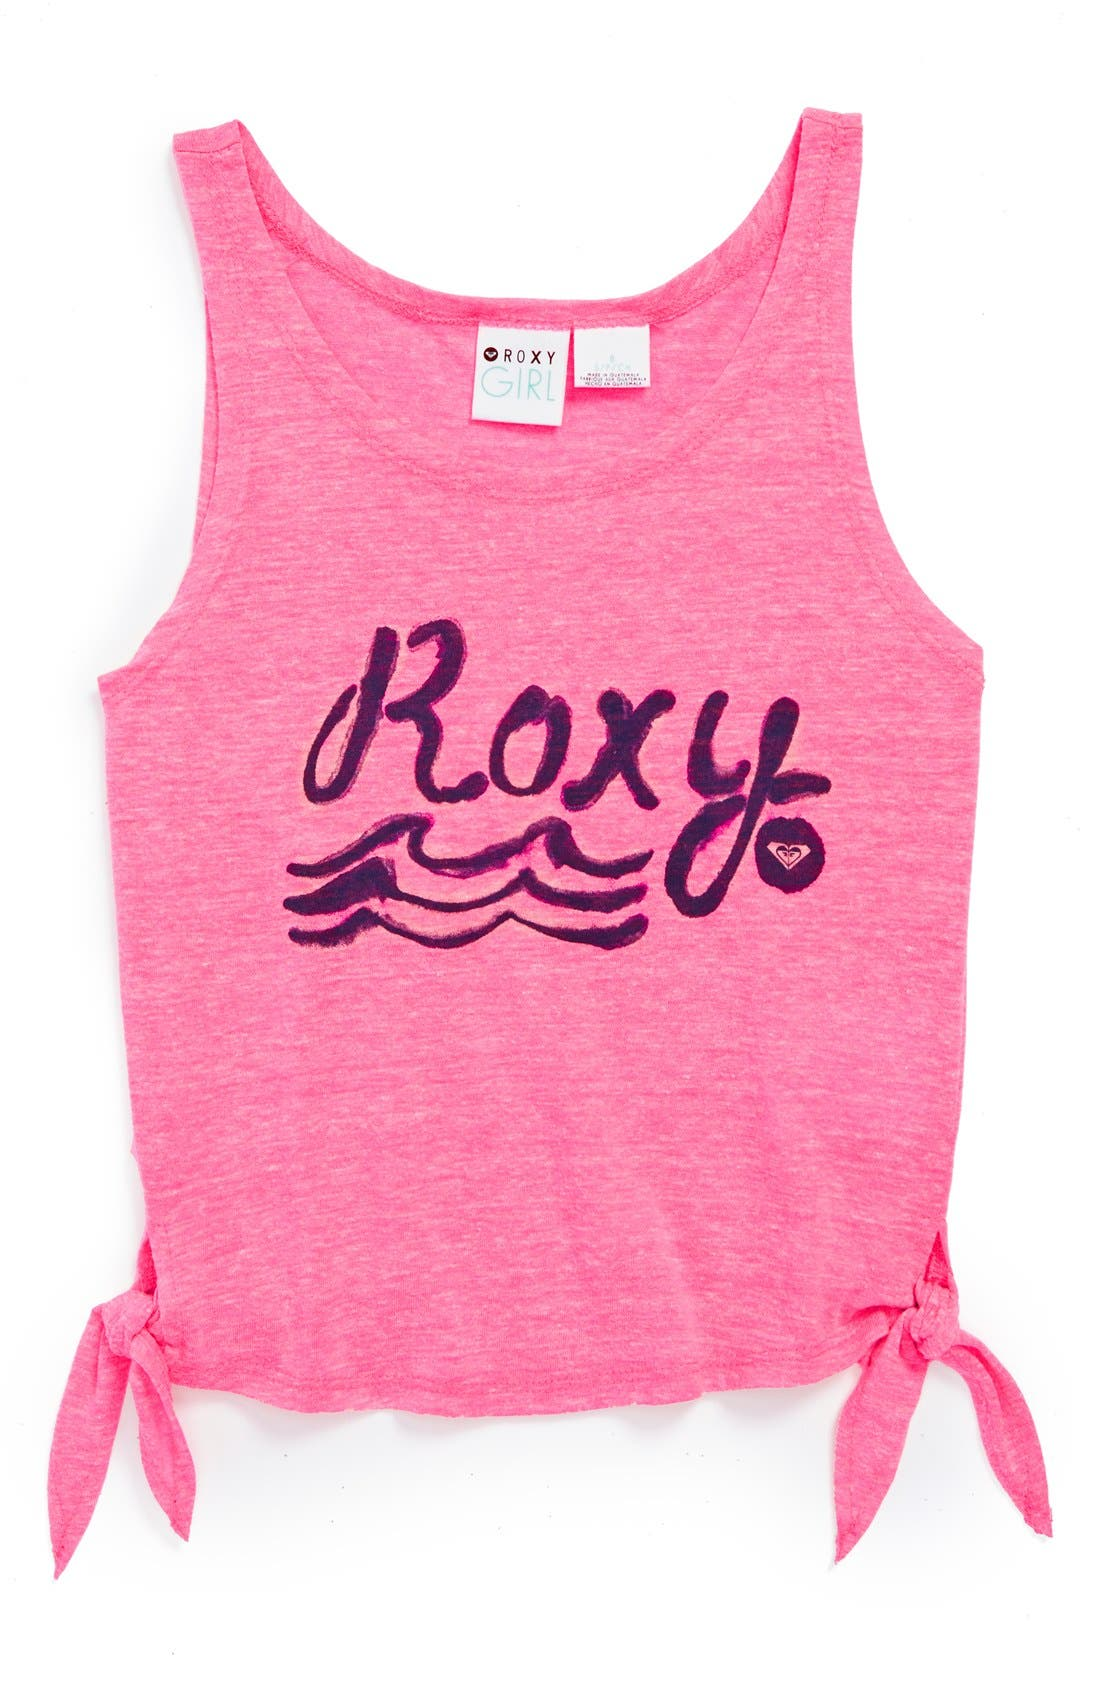 Alternate Image 1 Selected - Roxy 'From Above' Sleeveless Side Tie Tank Top (Big Girls)(Online Only)